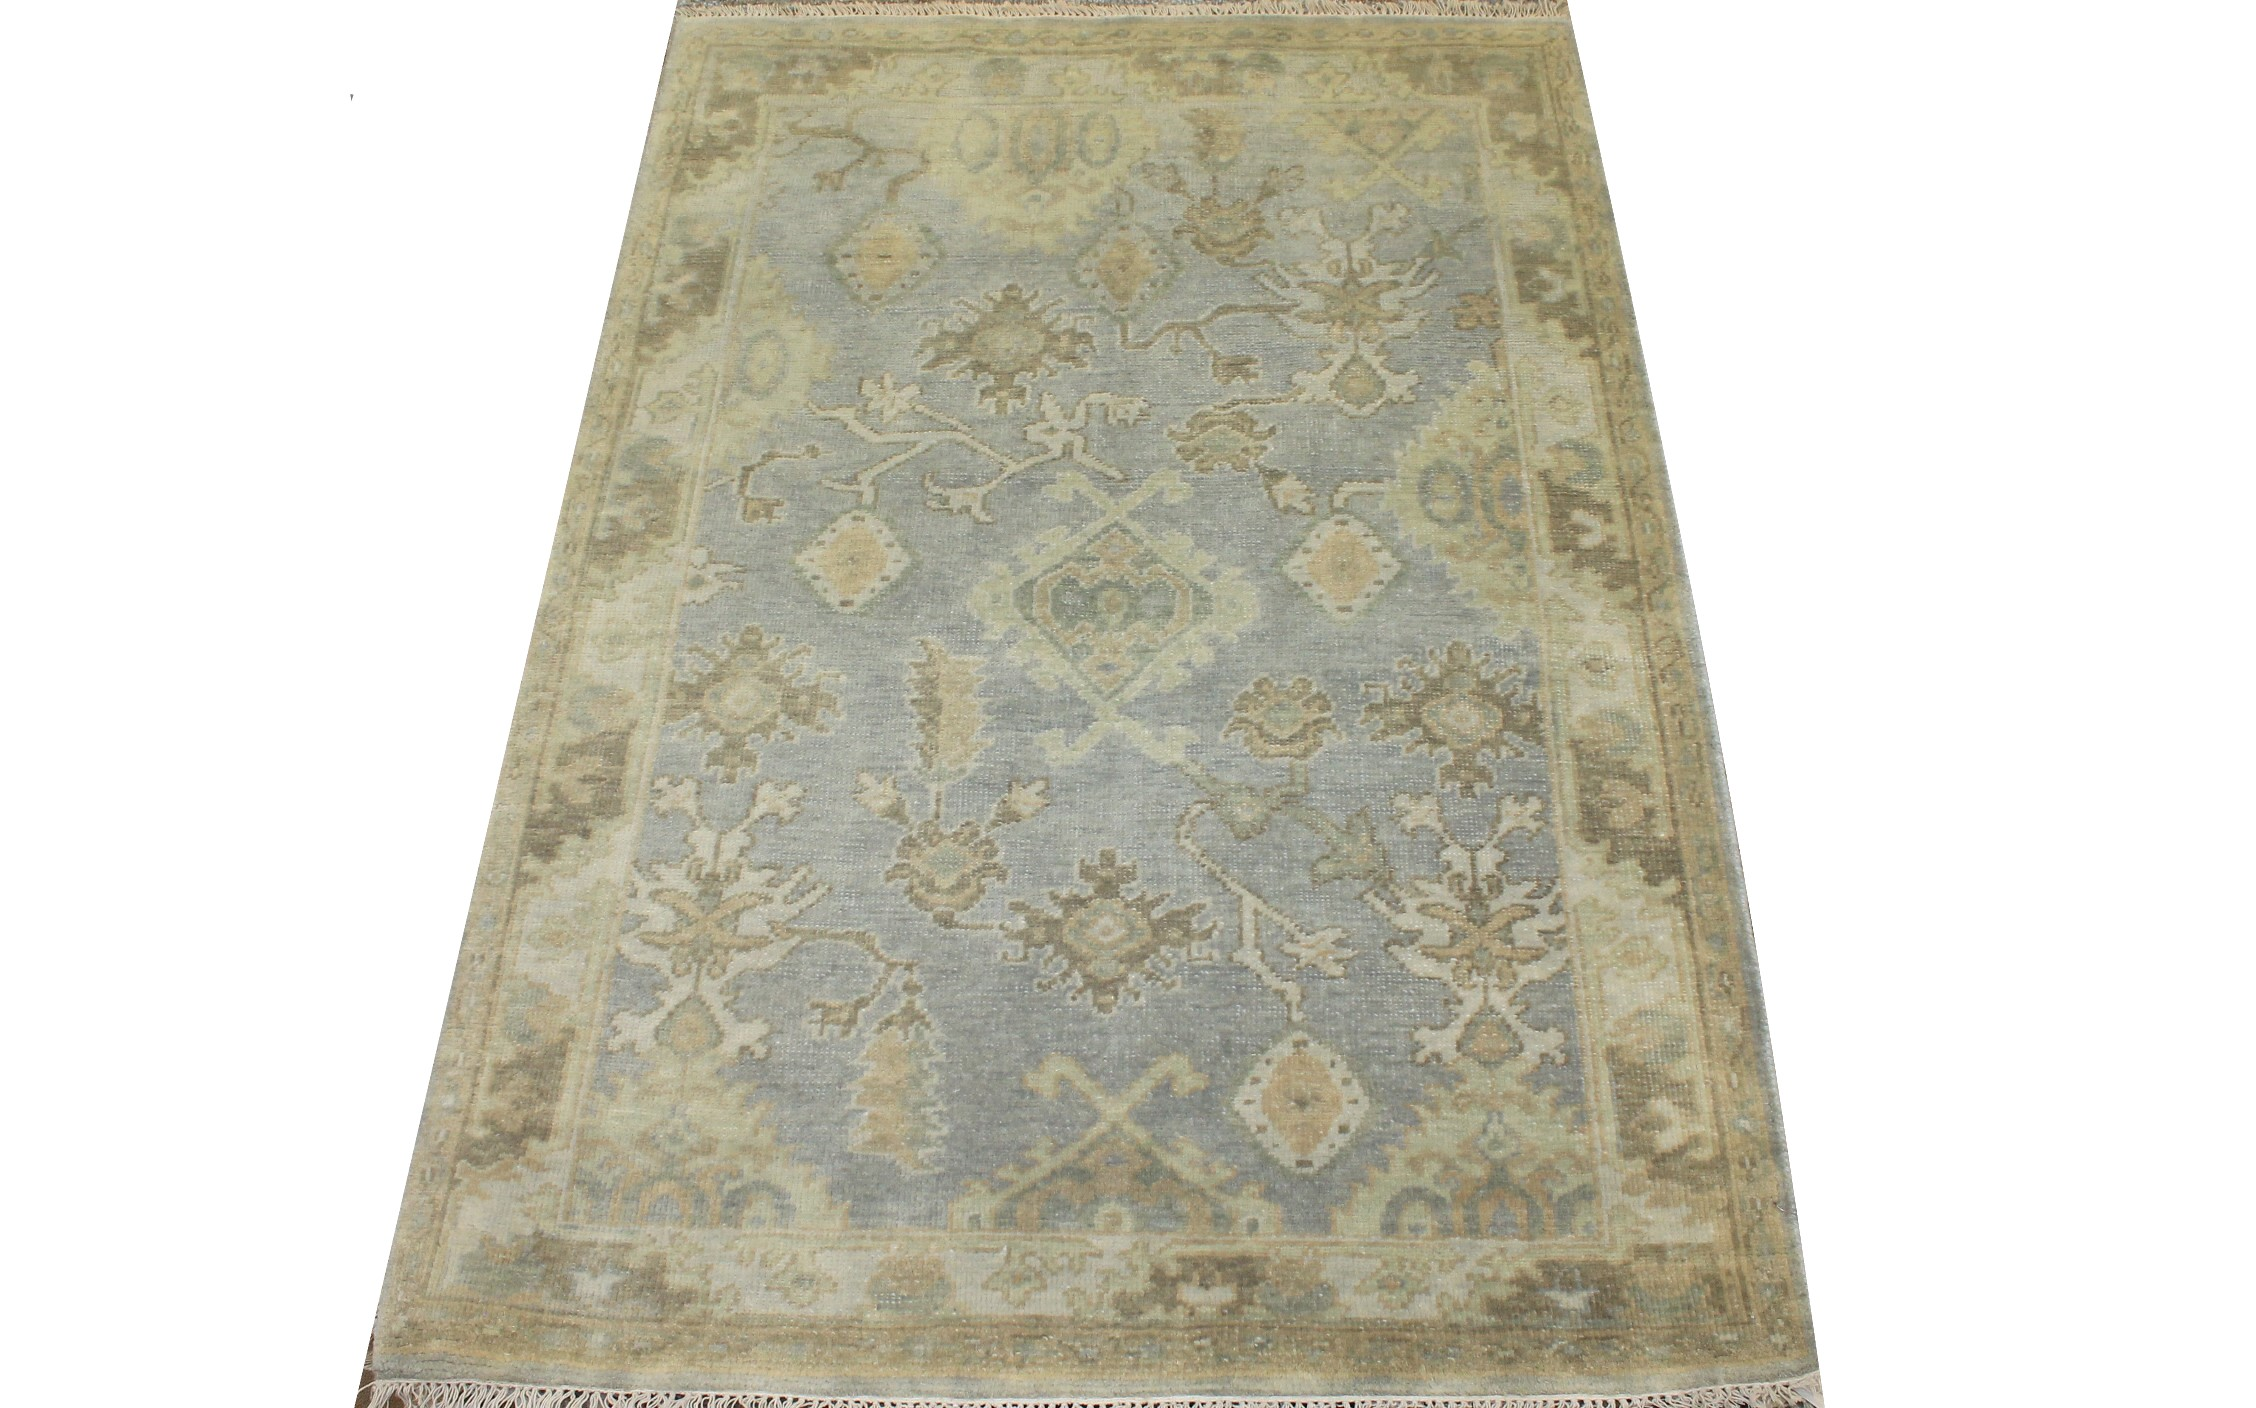 4x6 Oushak Hand Knotted Wool Area Rug - MR025583